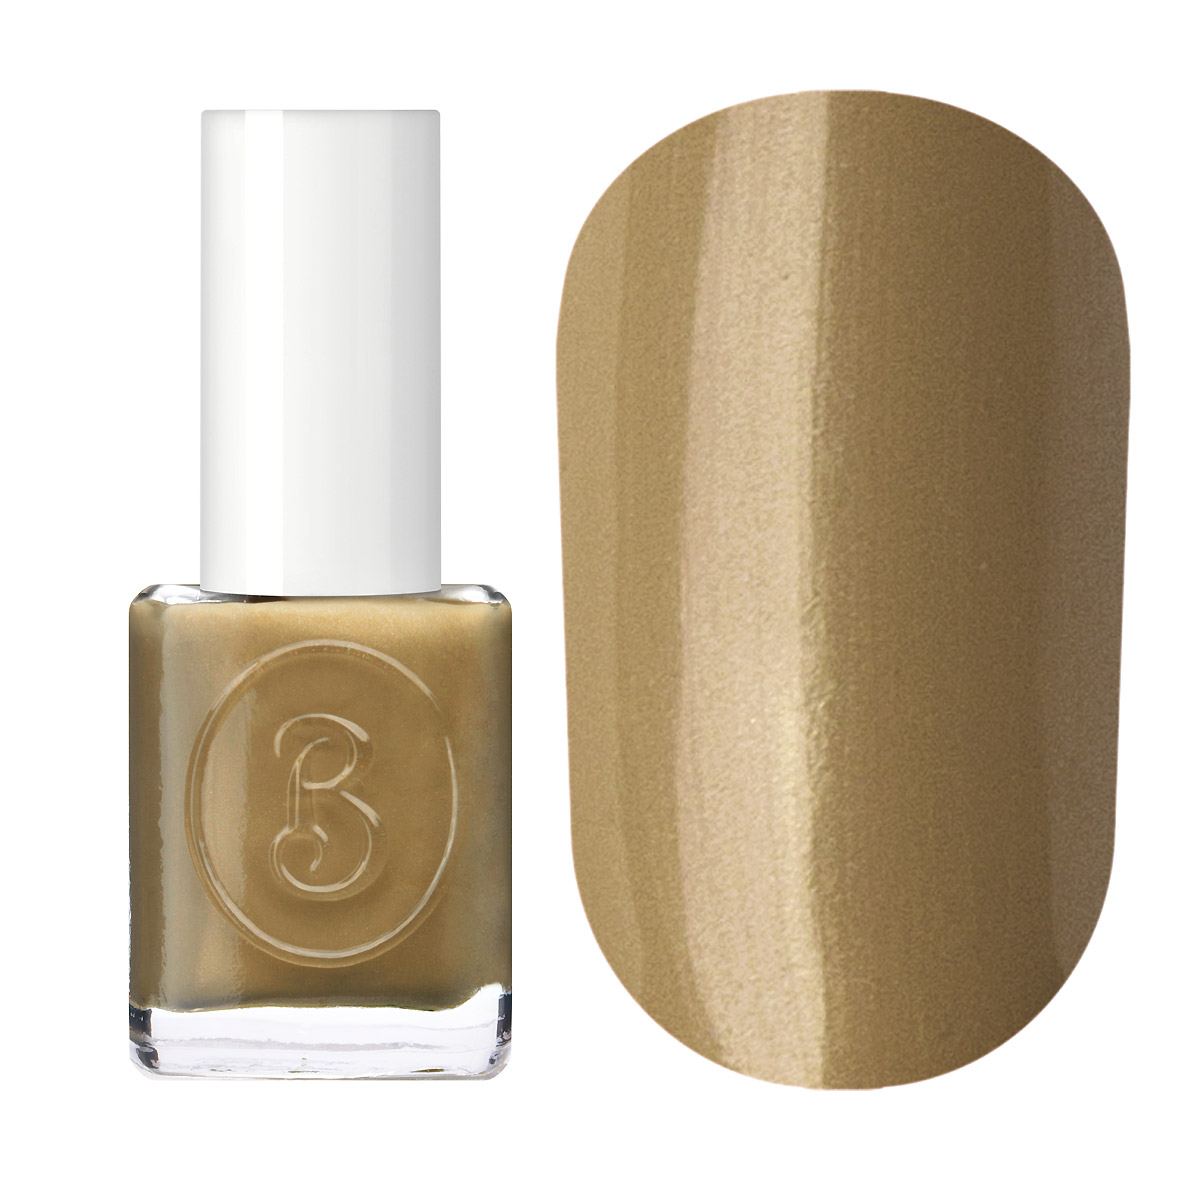 Berenice Oxygen Nail Polish / 46 honey bronze